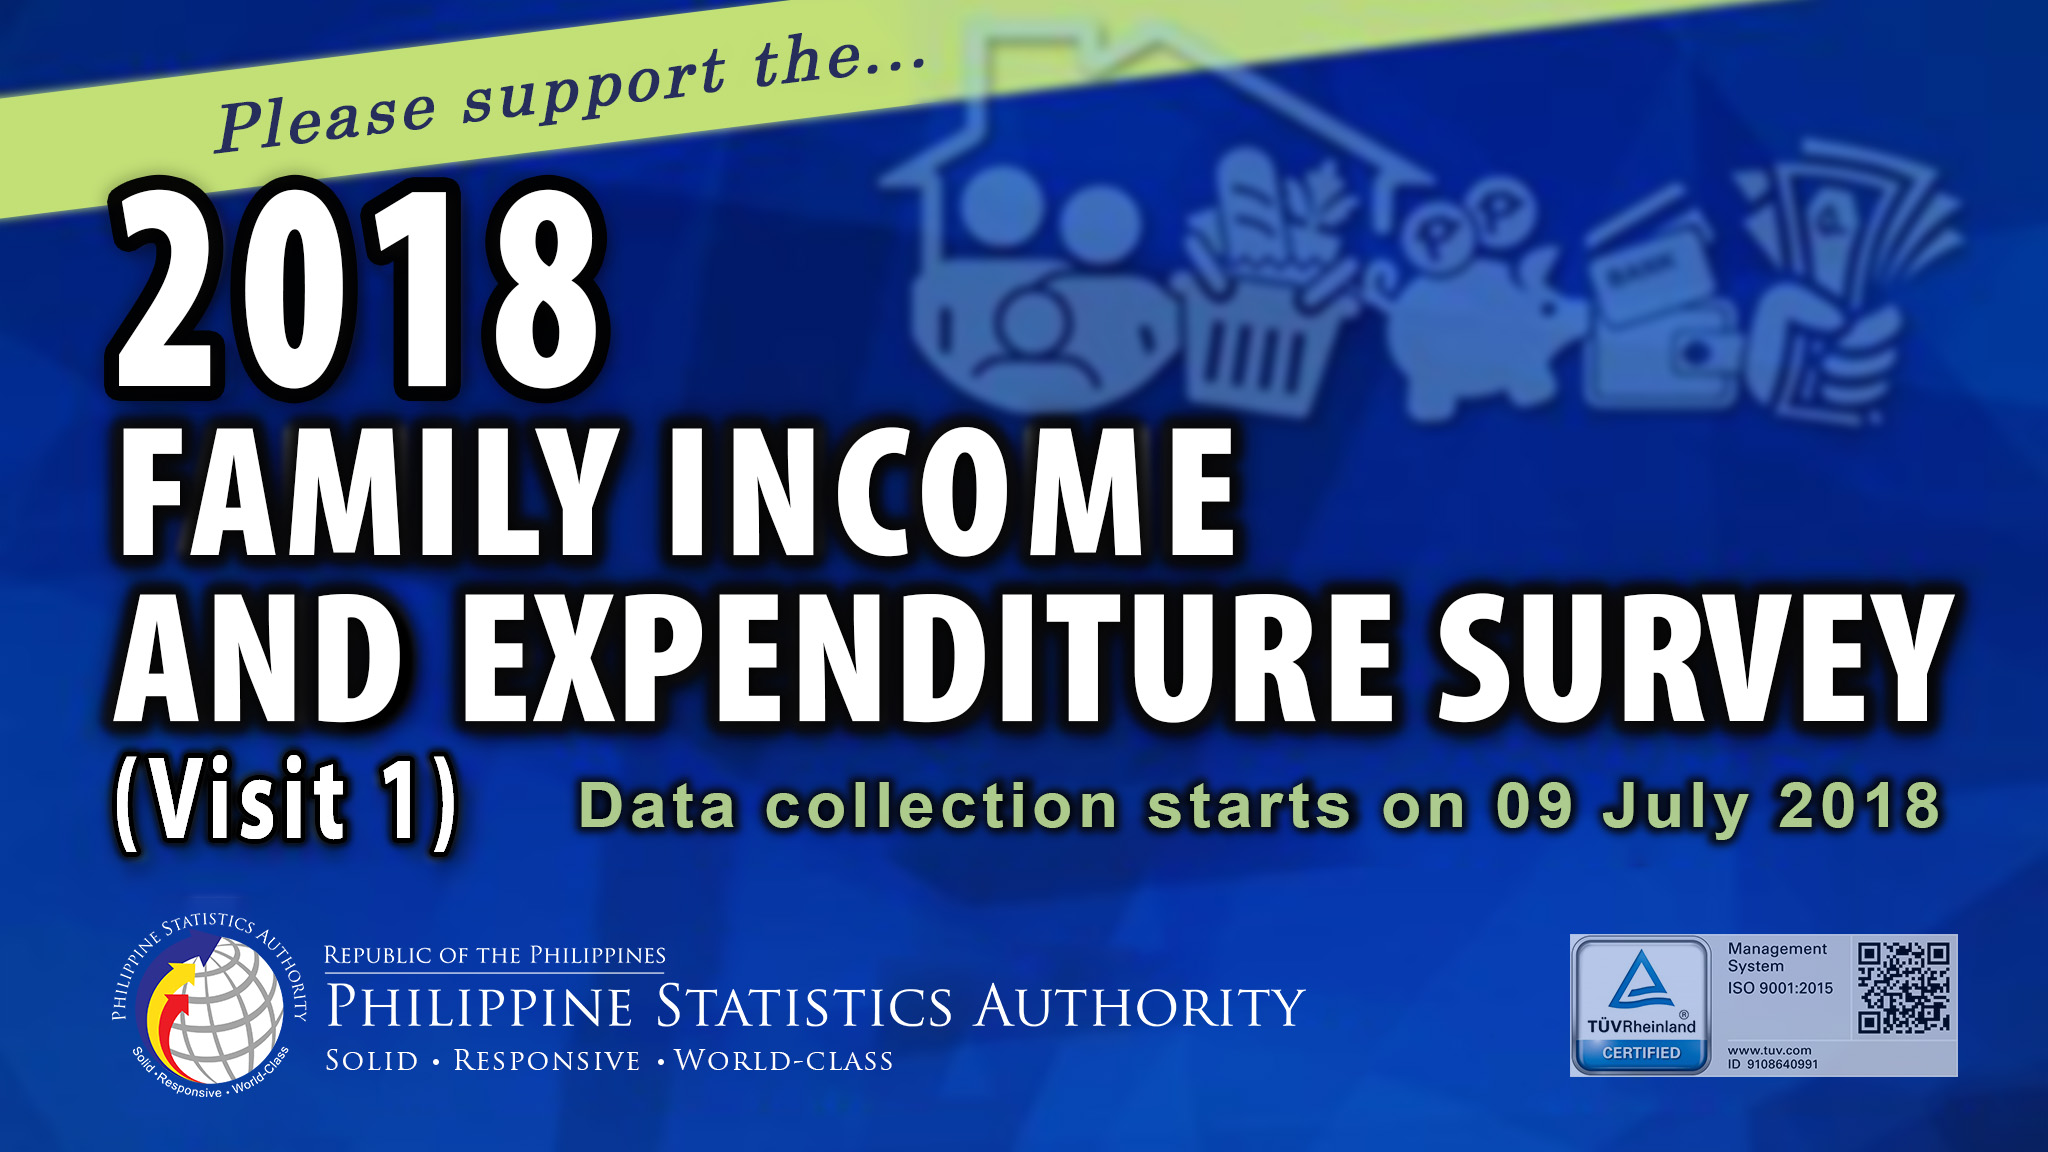 2018 Family Income and Expenditure Survey